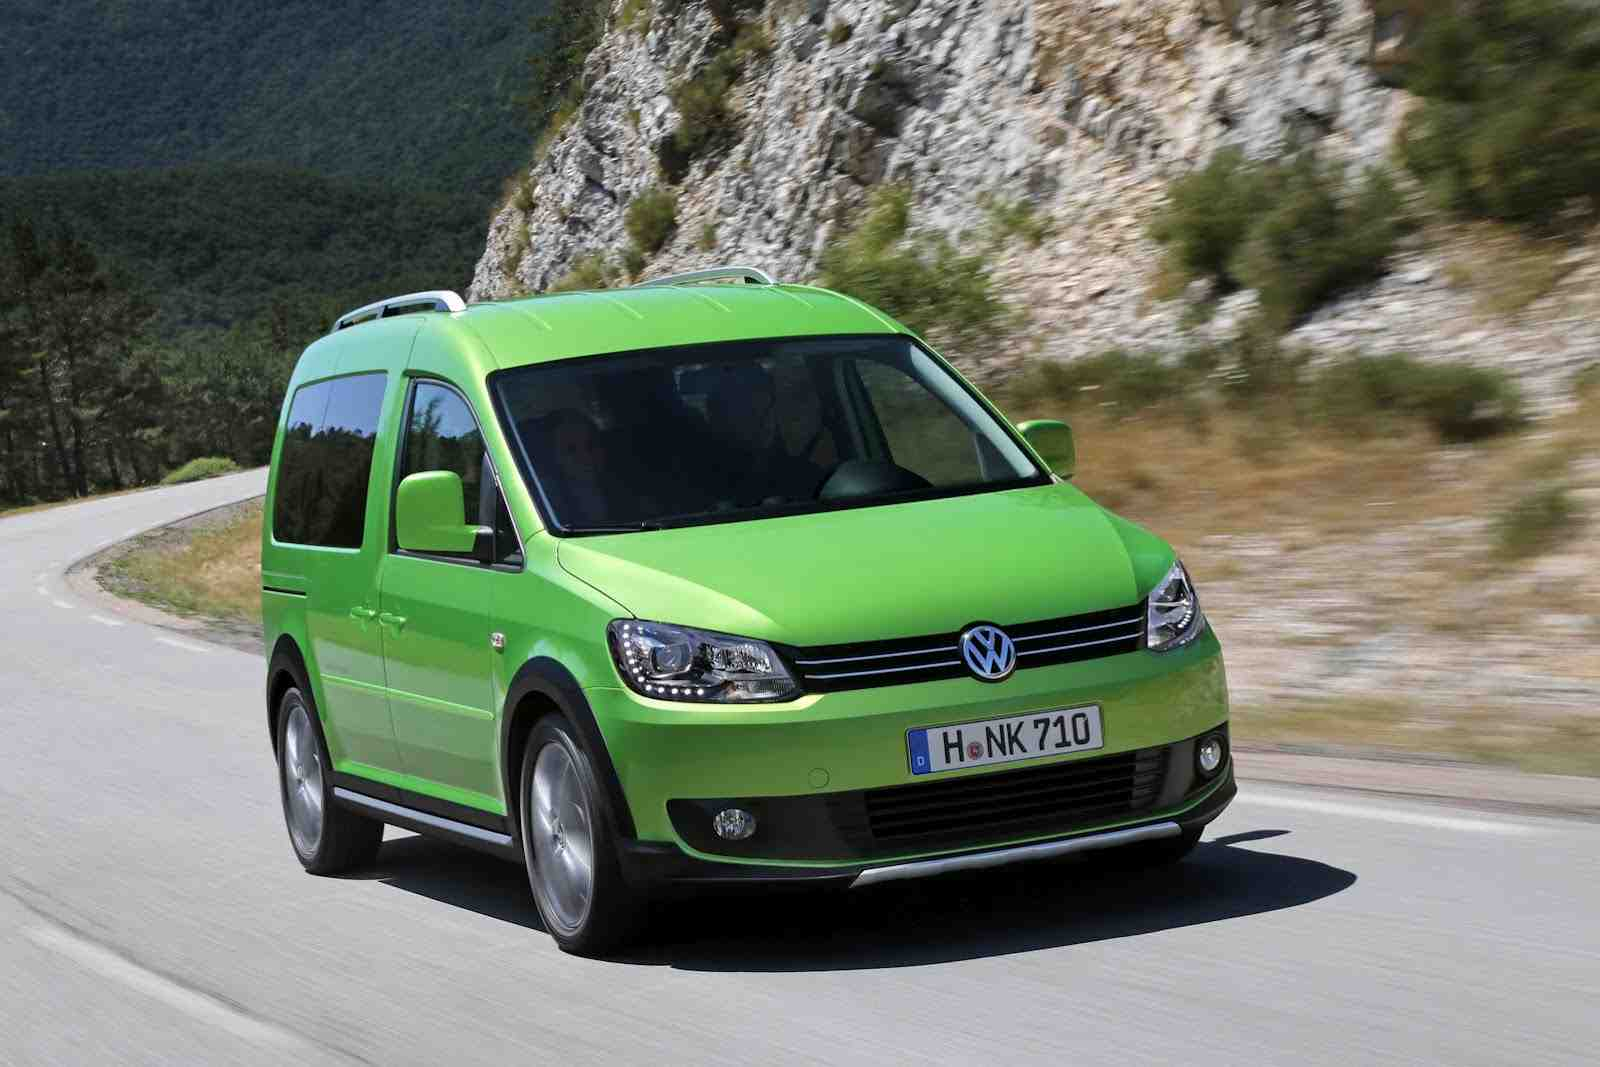 VW Cross Caddy technical details, history, photos on